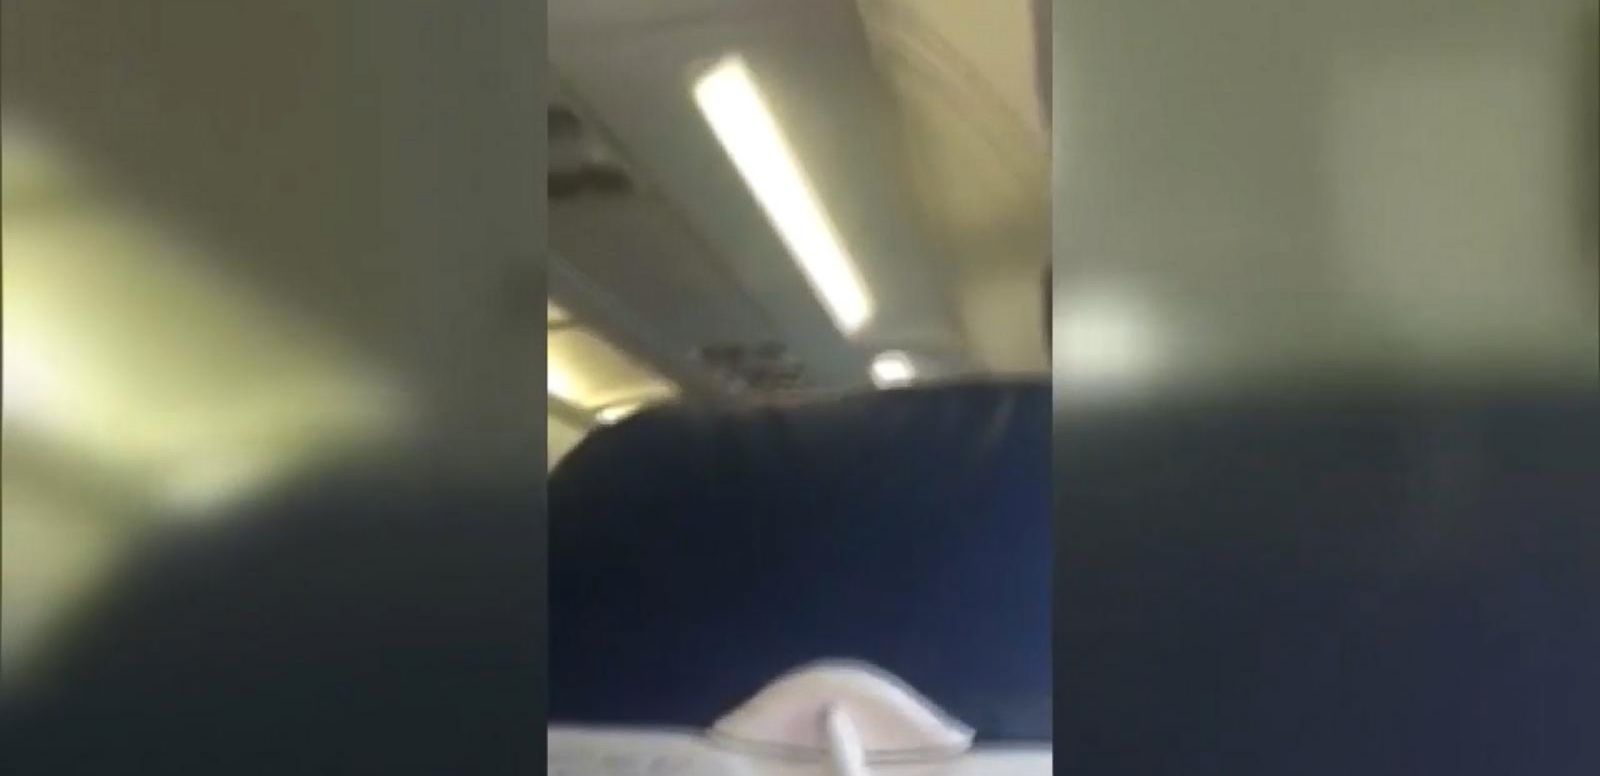 VIDEO: The passenger was removed after reportedly not hearing a flight attendant's directions to move out of the aisle.